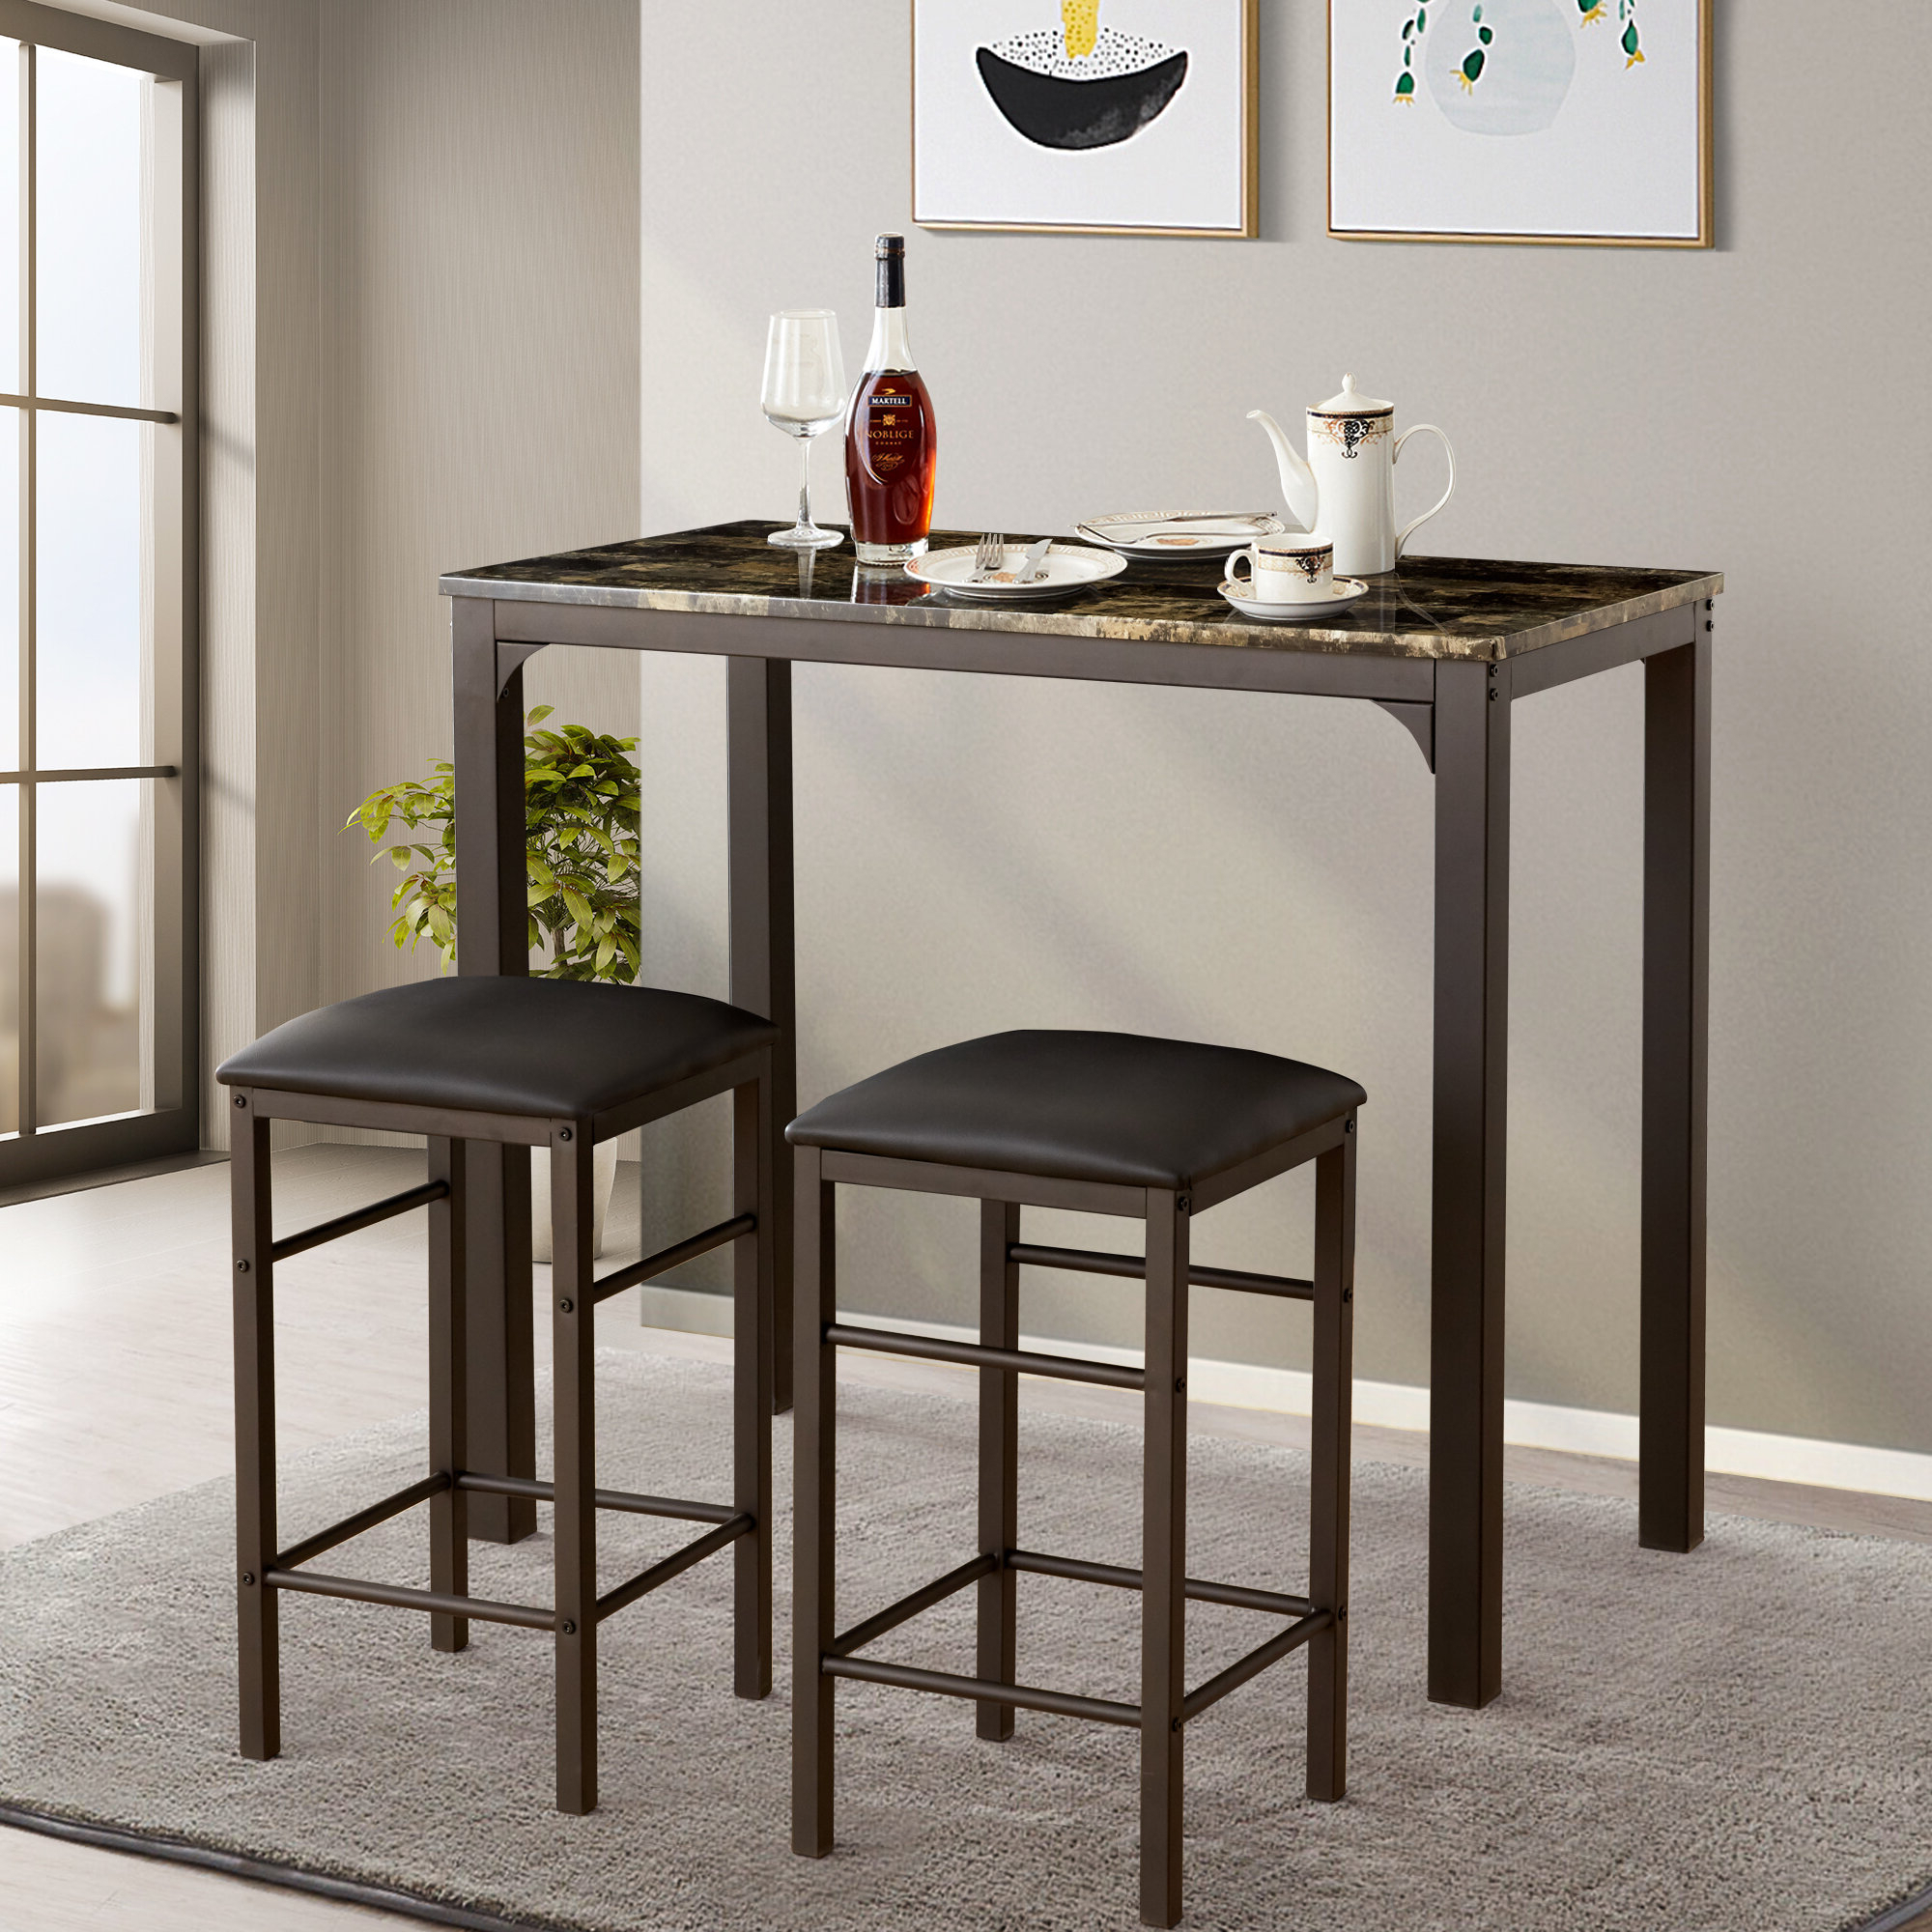 Mizpah 3 Piece Counter Height Dining Sets For Most Recent Tappahannock 3 Piece Counter Height Dining Set (View 7 of 20)